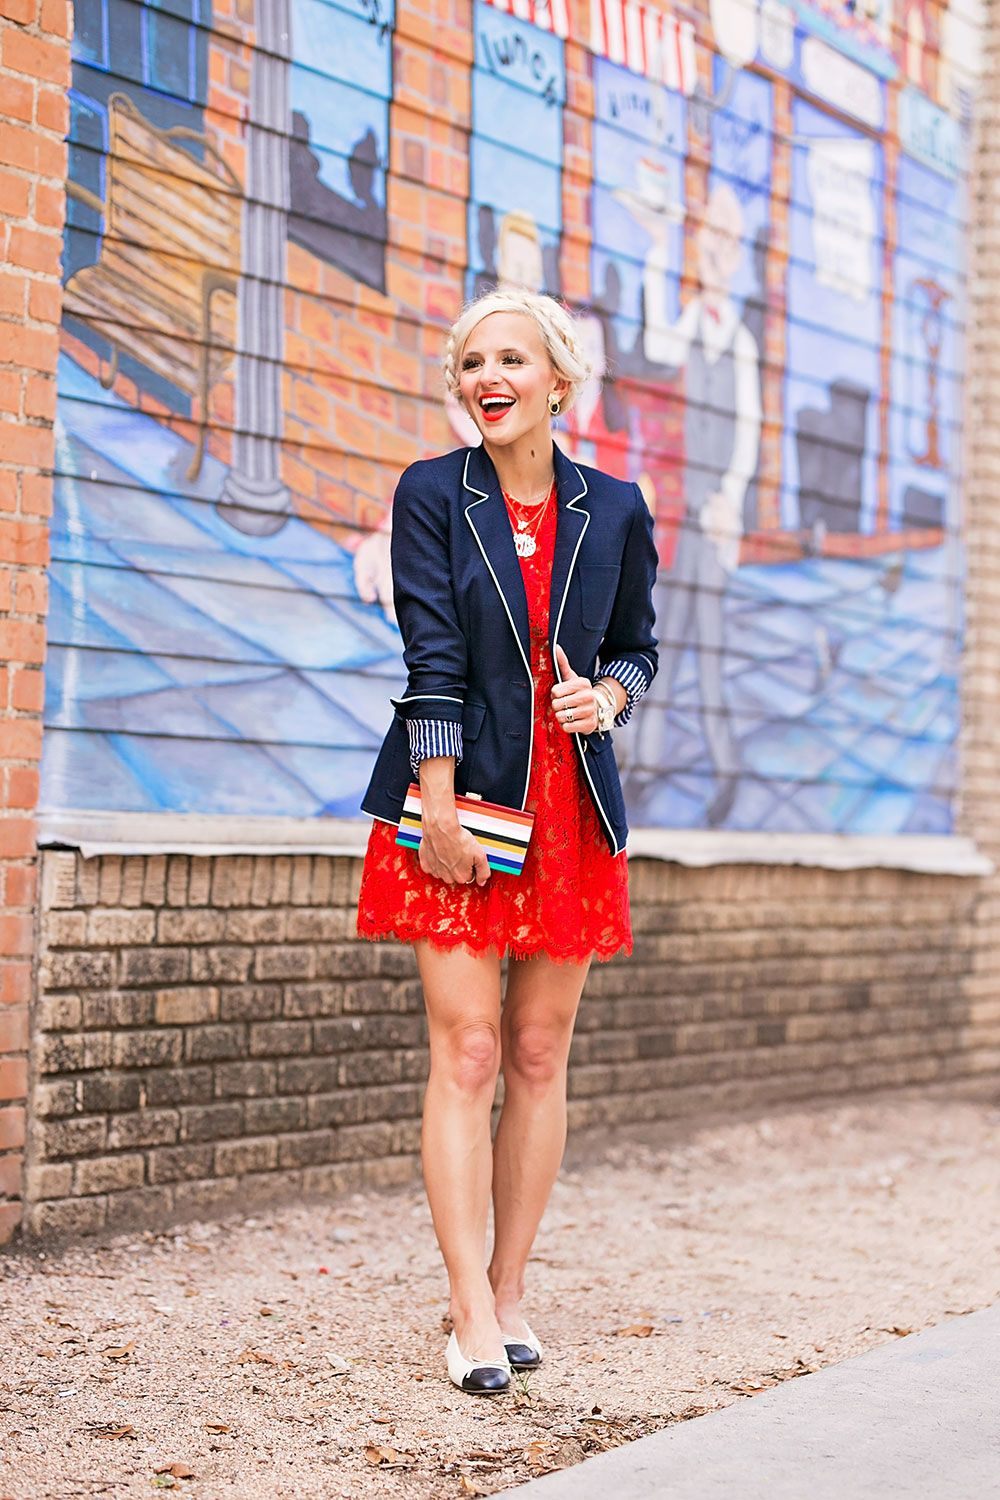 dcf28661e1b8 navy blazer + red dress outfit.